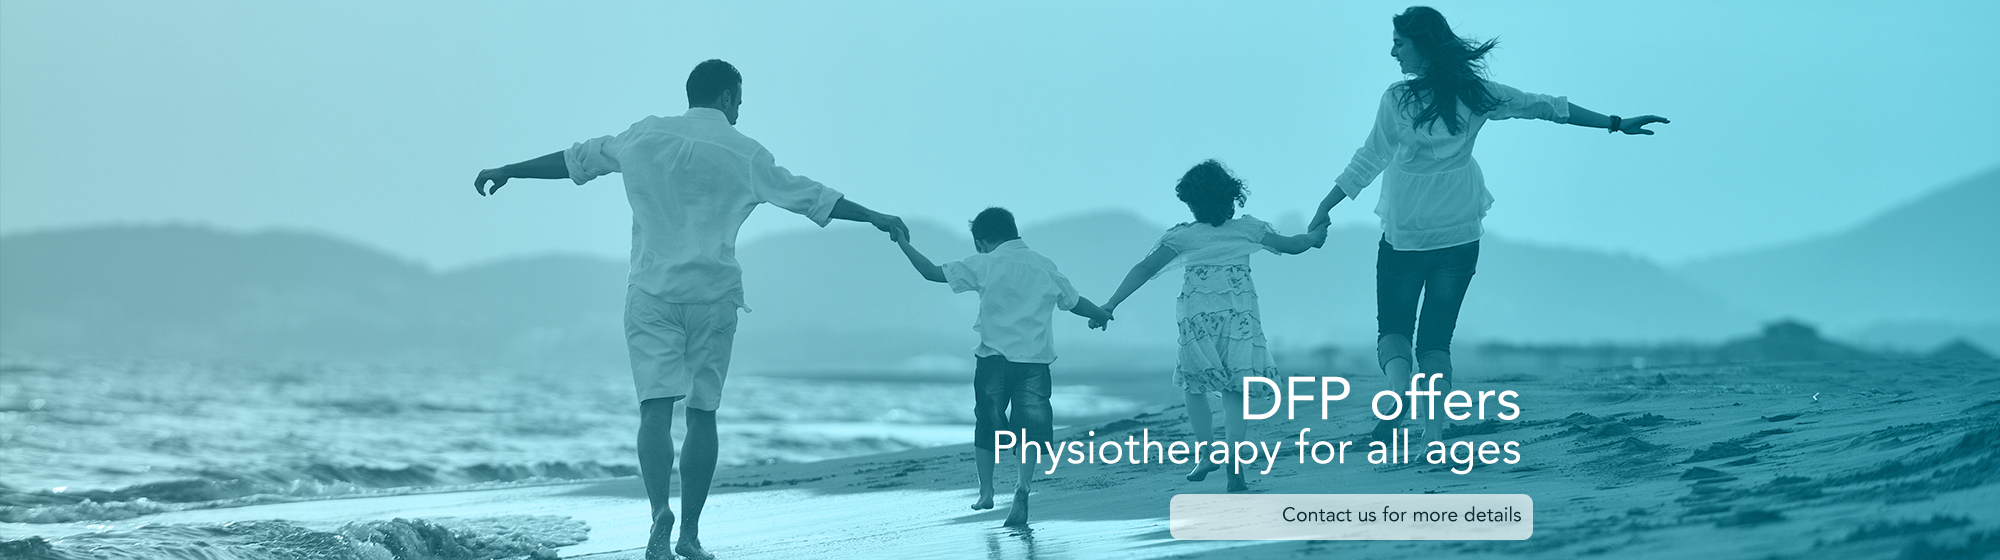 homepageslider_physio